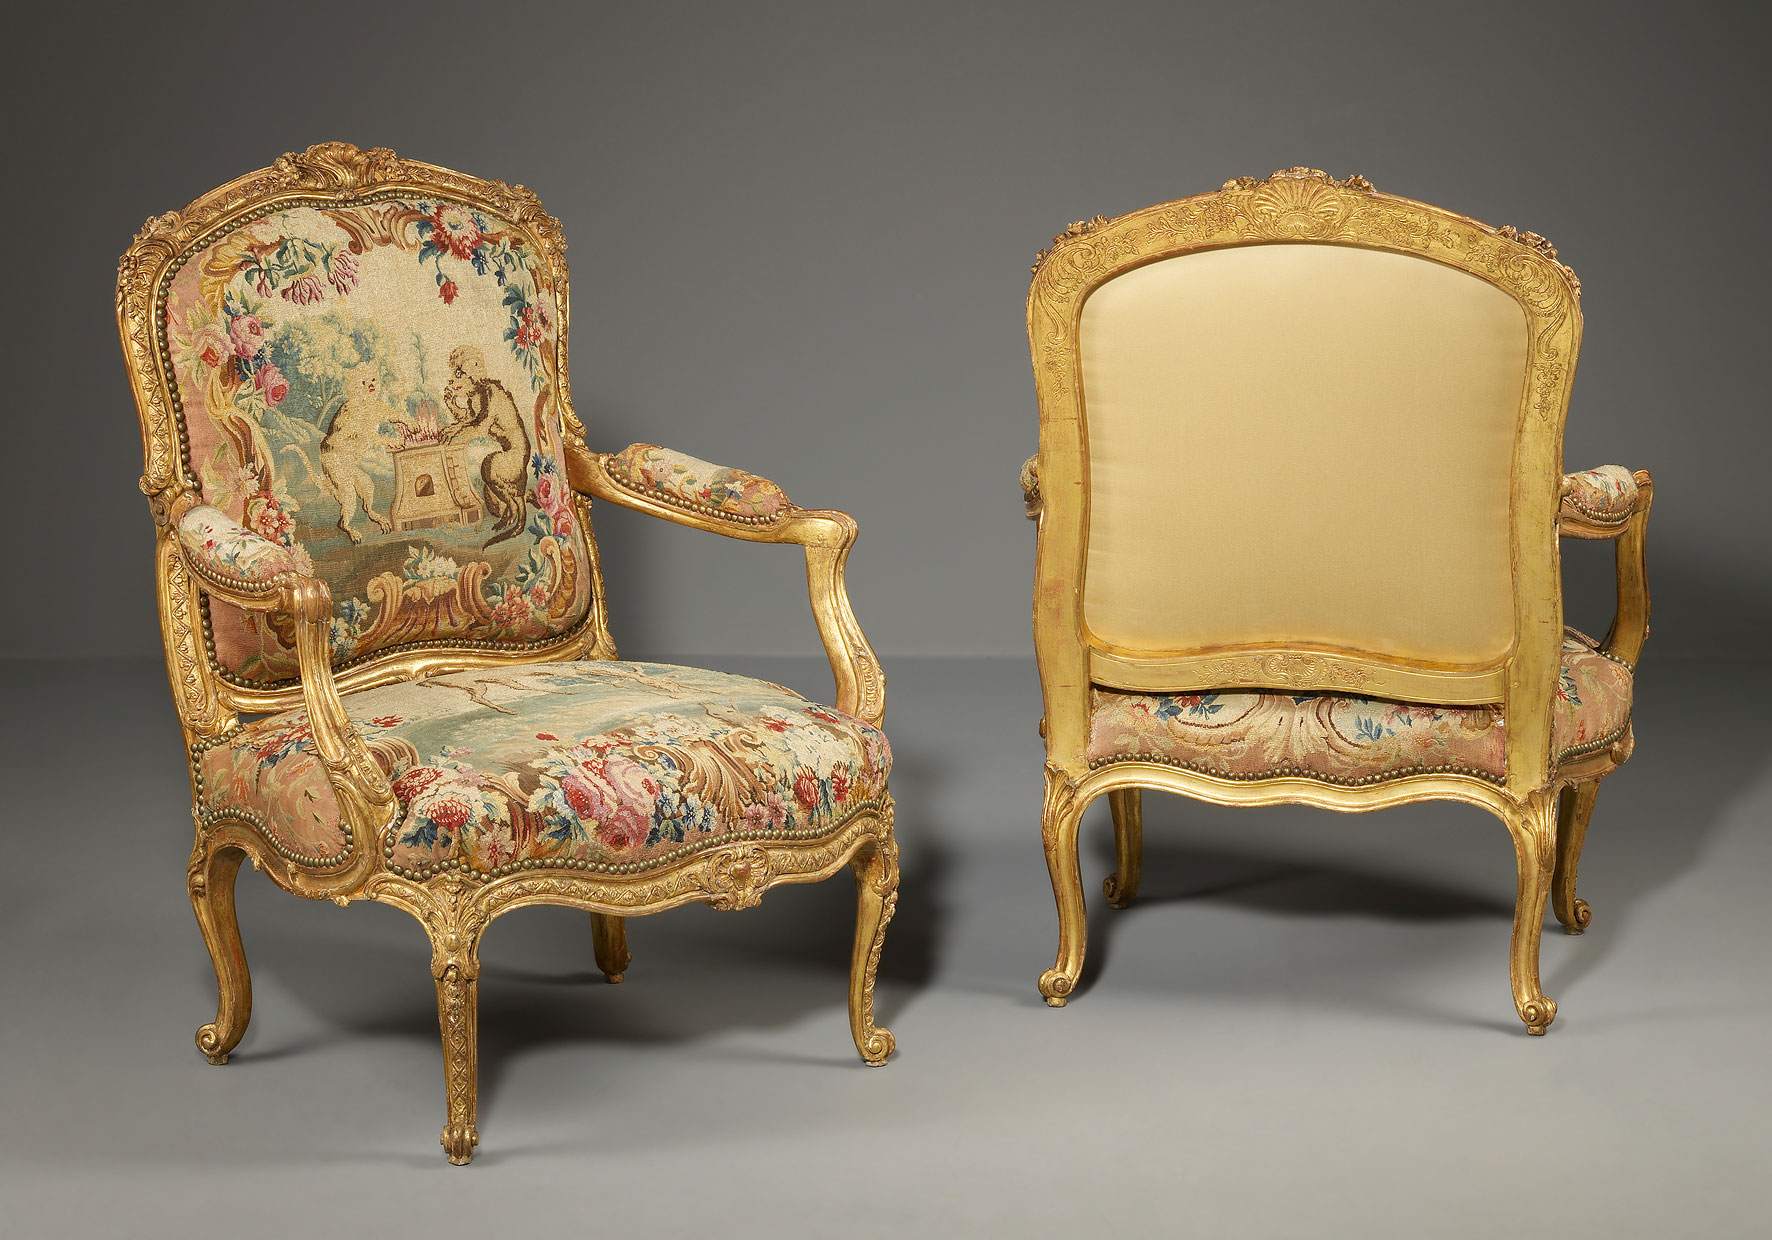 deux fauteuils d 39 epoque louis xv attribu jean jacques tilliard kollenburg antiquairs. Black Bedroom Furniture Sets. Home Design Ideas